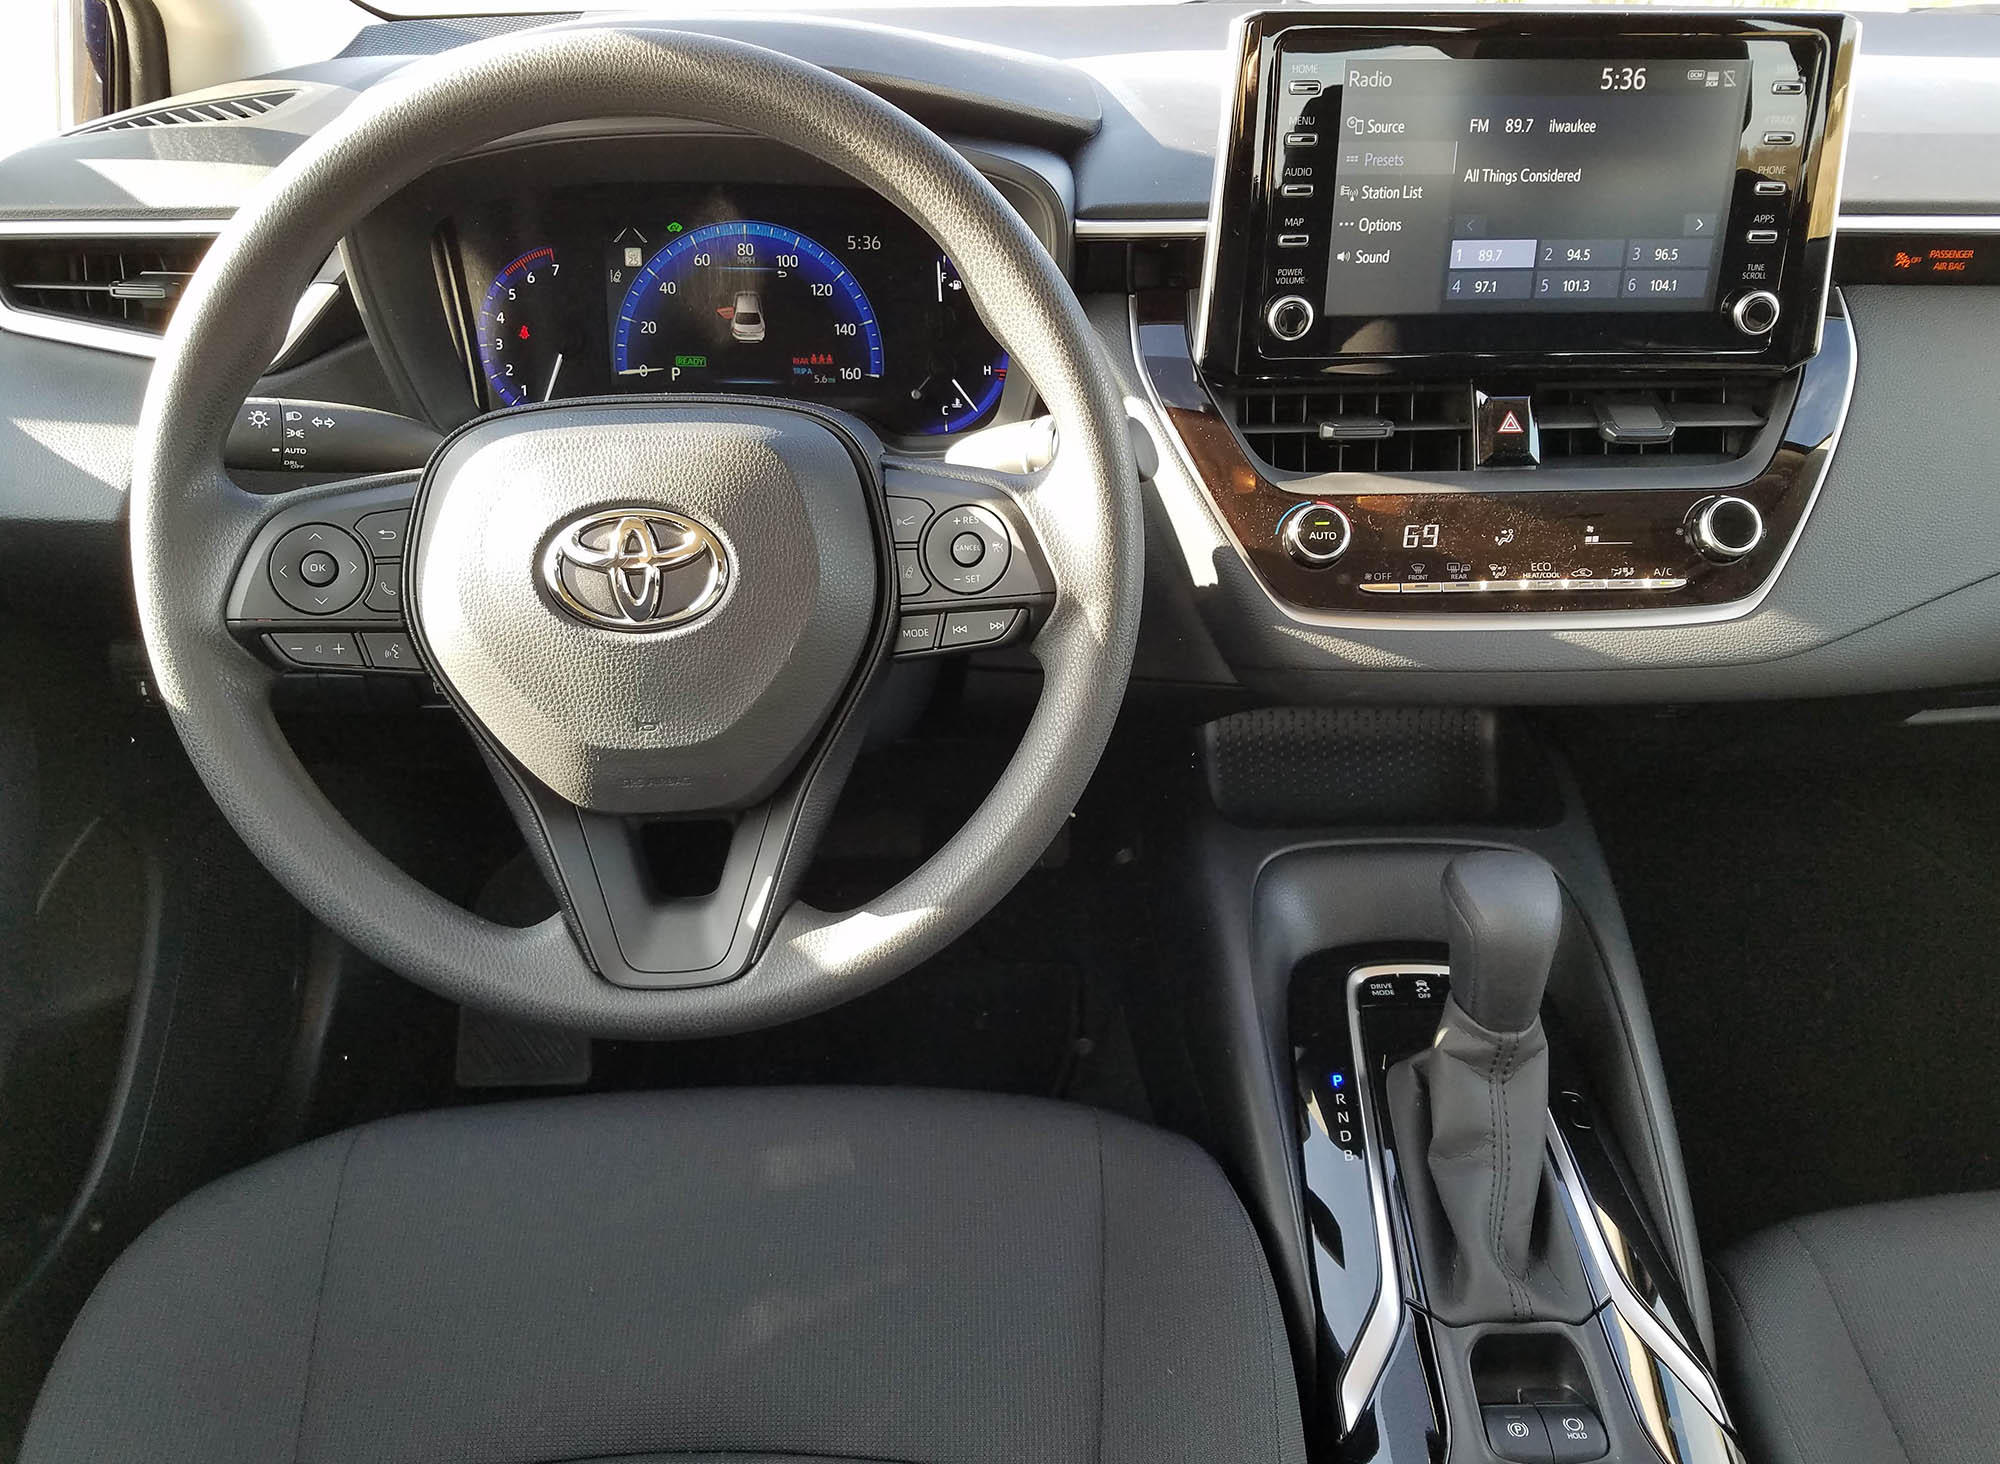 Toyota Corolla Interior >> 2020 Toyota Corolla LE Hybrid Review: High Value, High MPG